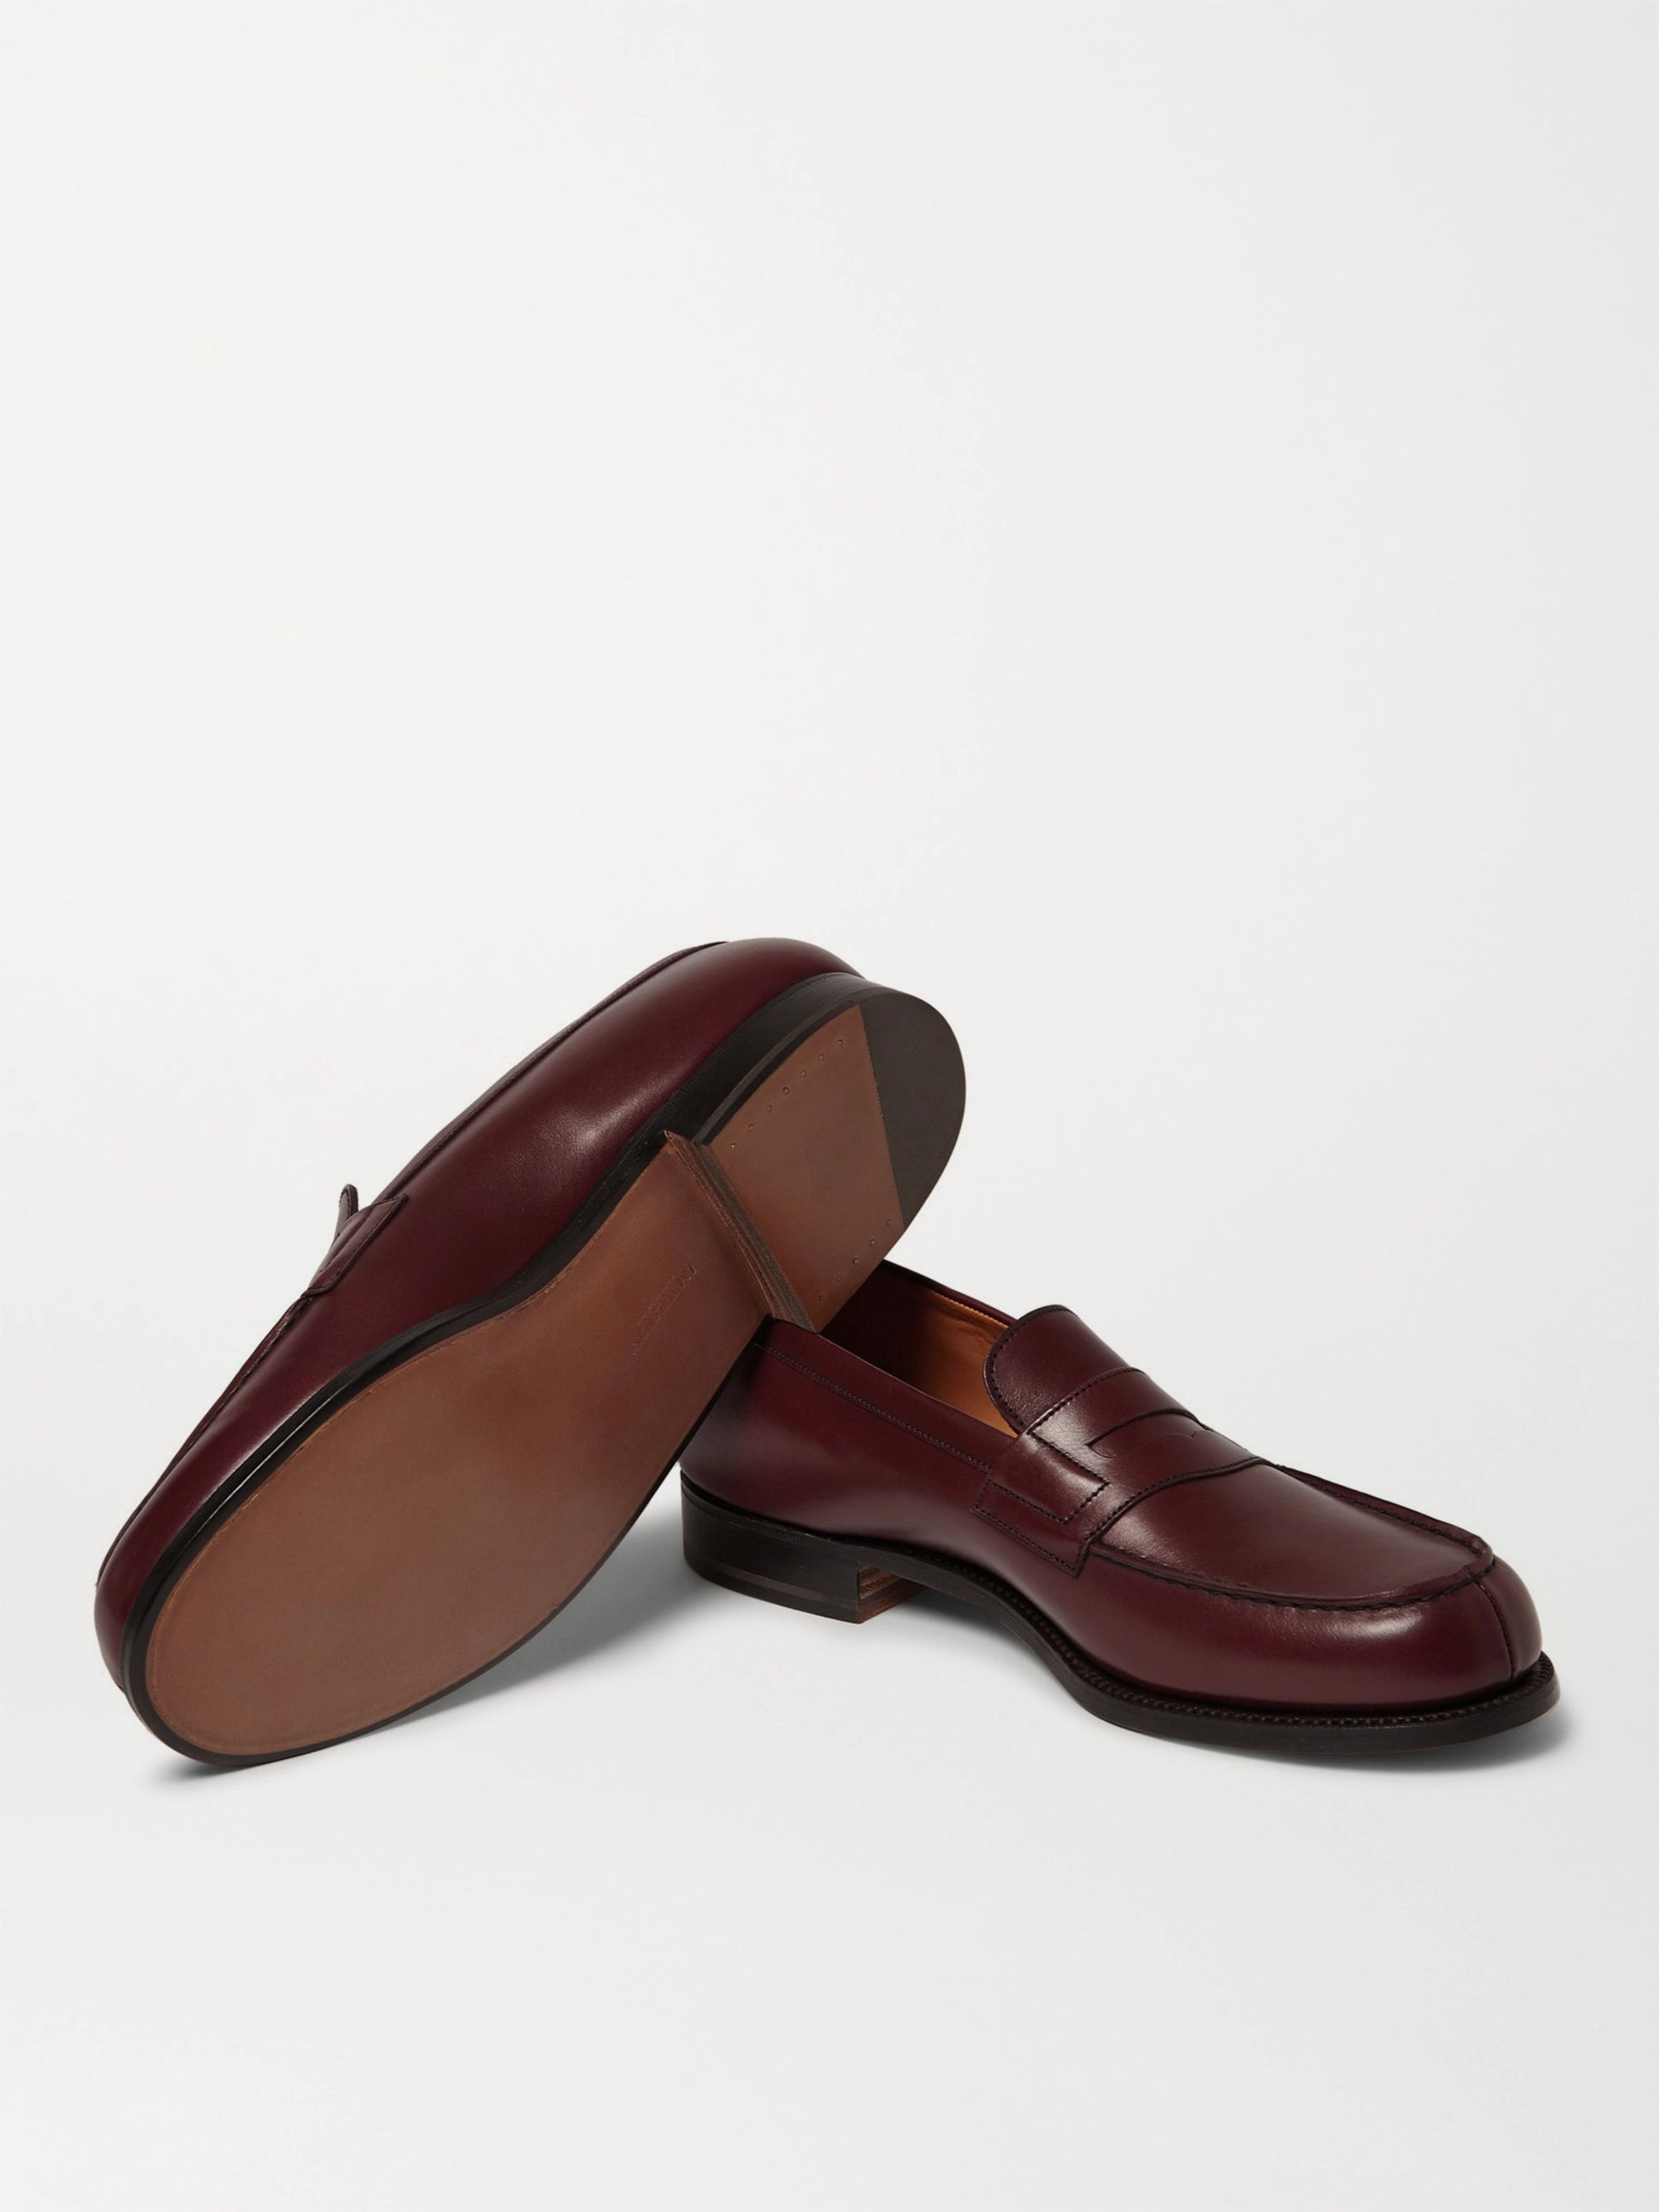 J.M. Weston 180 The Moccasin Leather Loafers